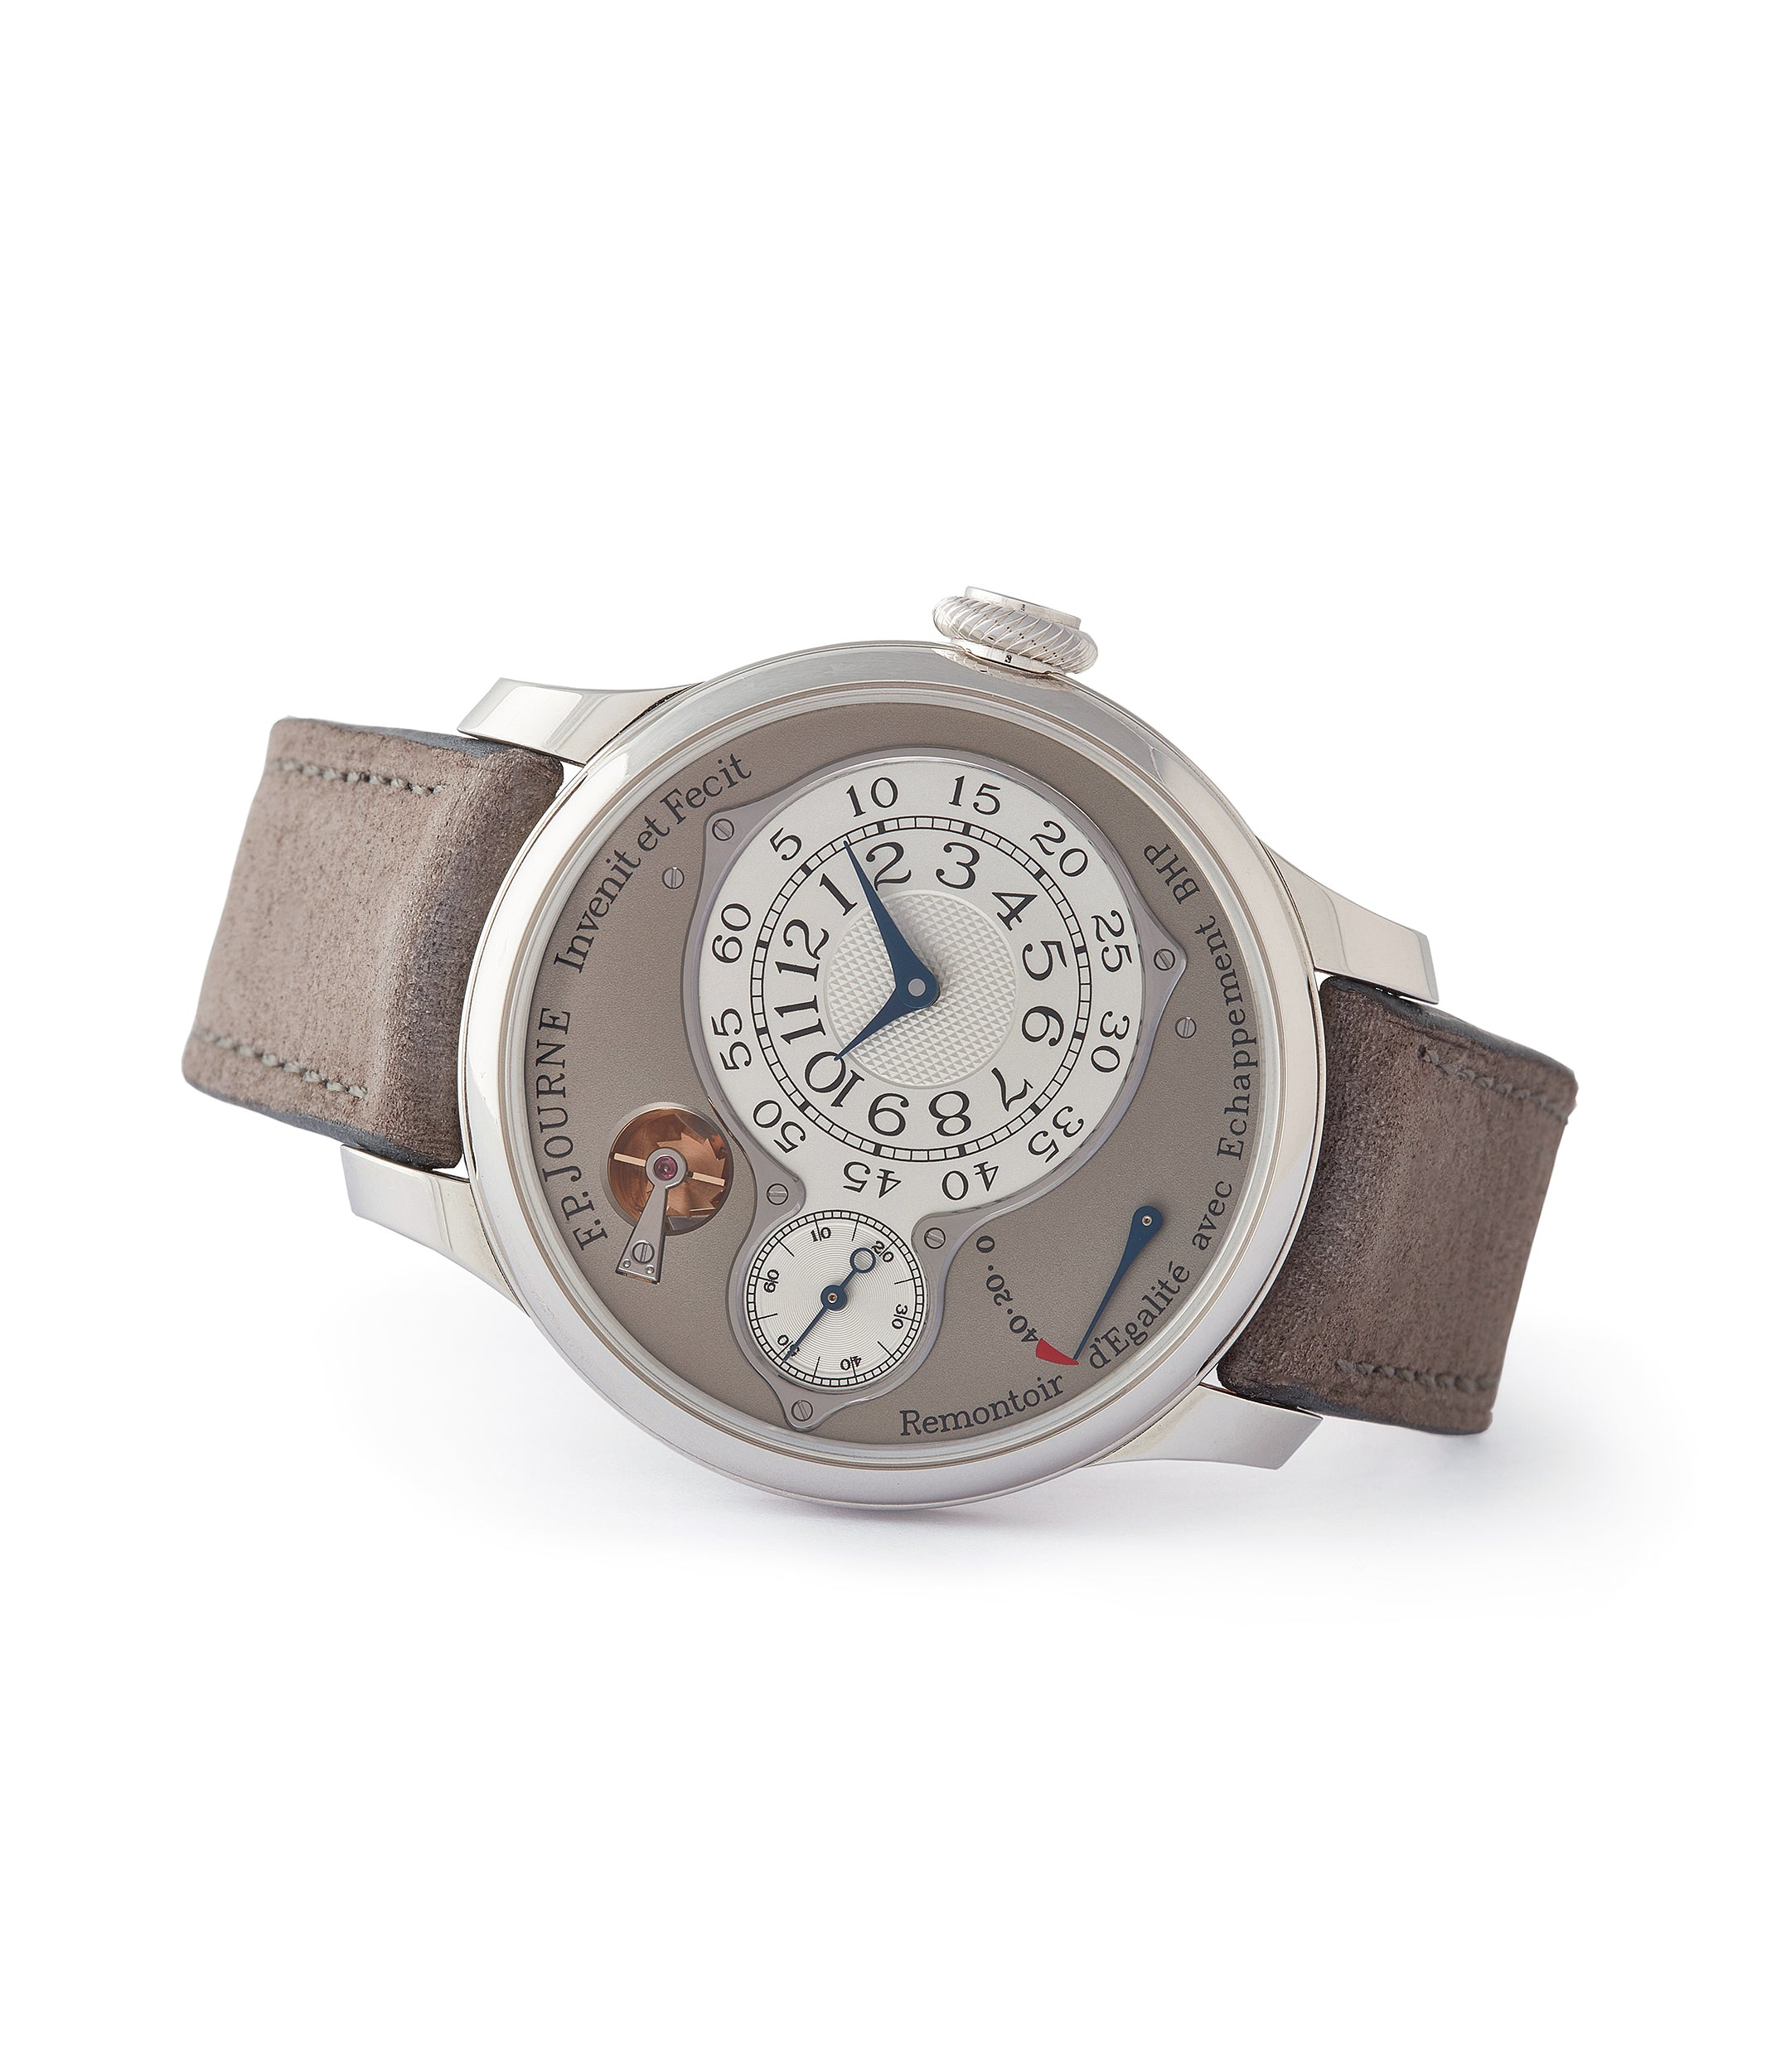 side-shot independent watchmaker F. P. Journe Chronometre Optimum grey dial time-only dress watch for sale online at A Collected Man London UK specialist rare watches